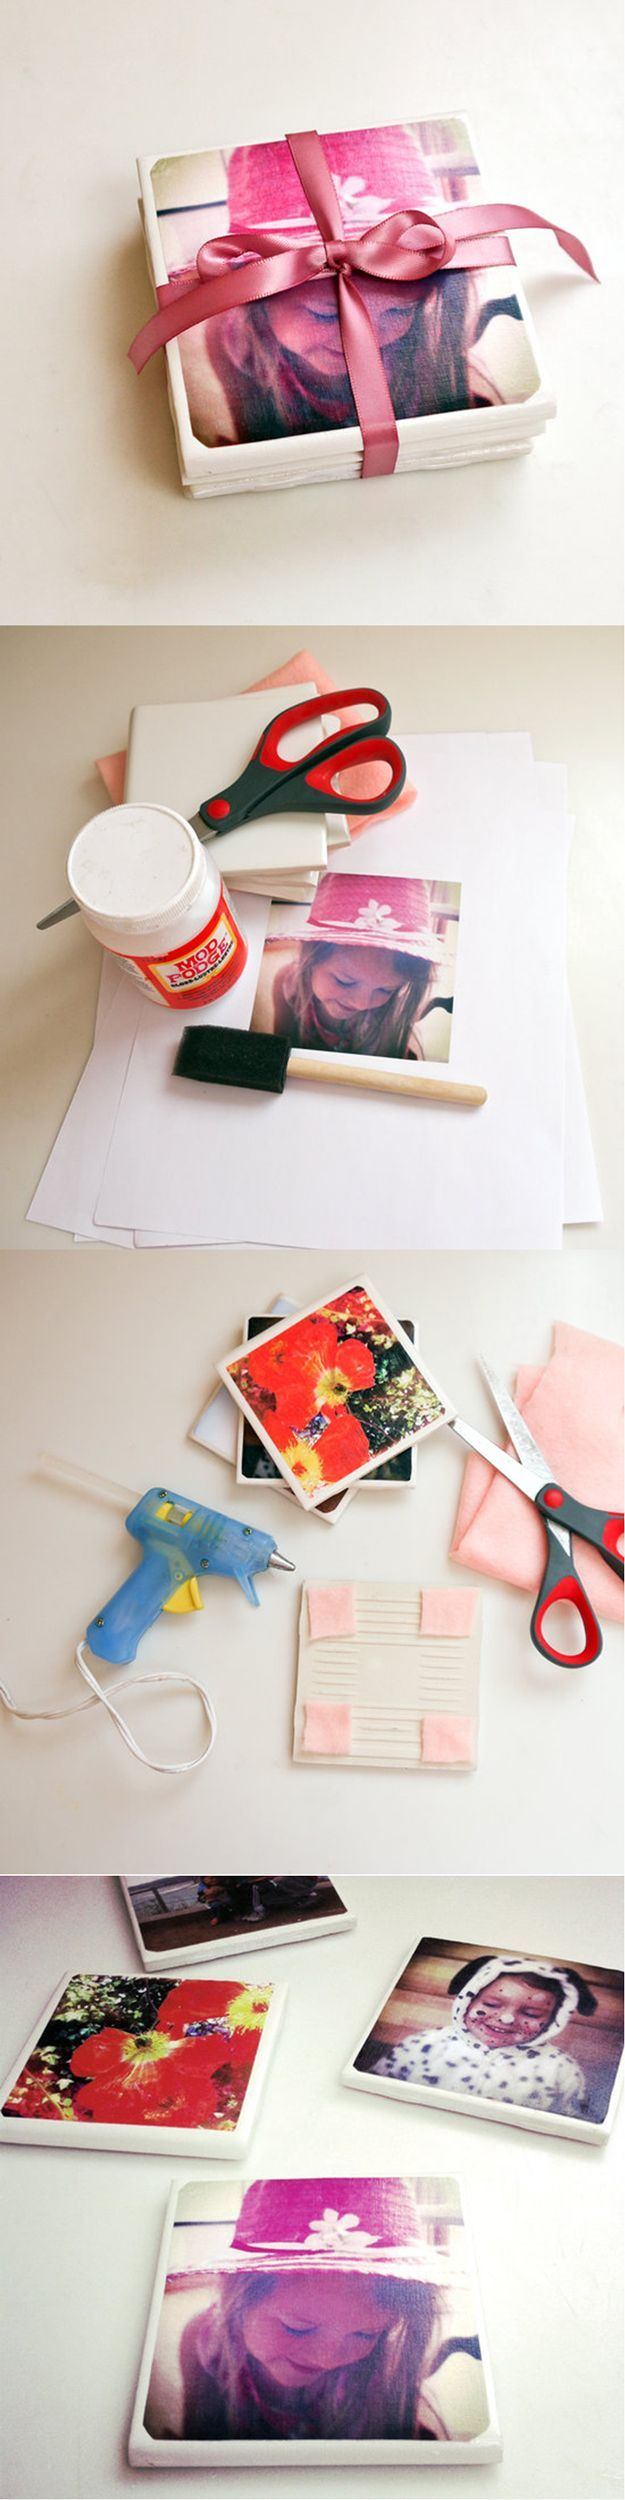 DIY Tile Photo Coasters   Thoughtful Personalized DIY Project for Mother's Day by DIY Ready at http://diyready.com/diy-gifts-mothers-day-ideas/